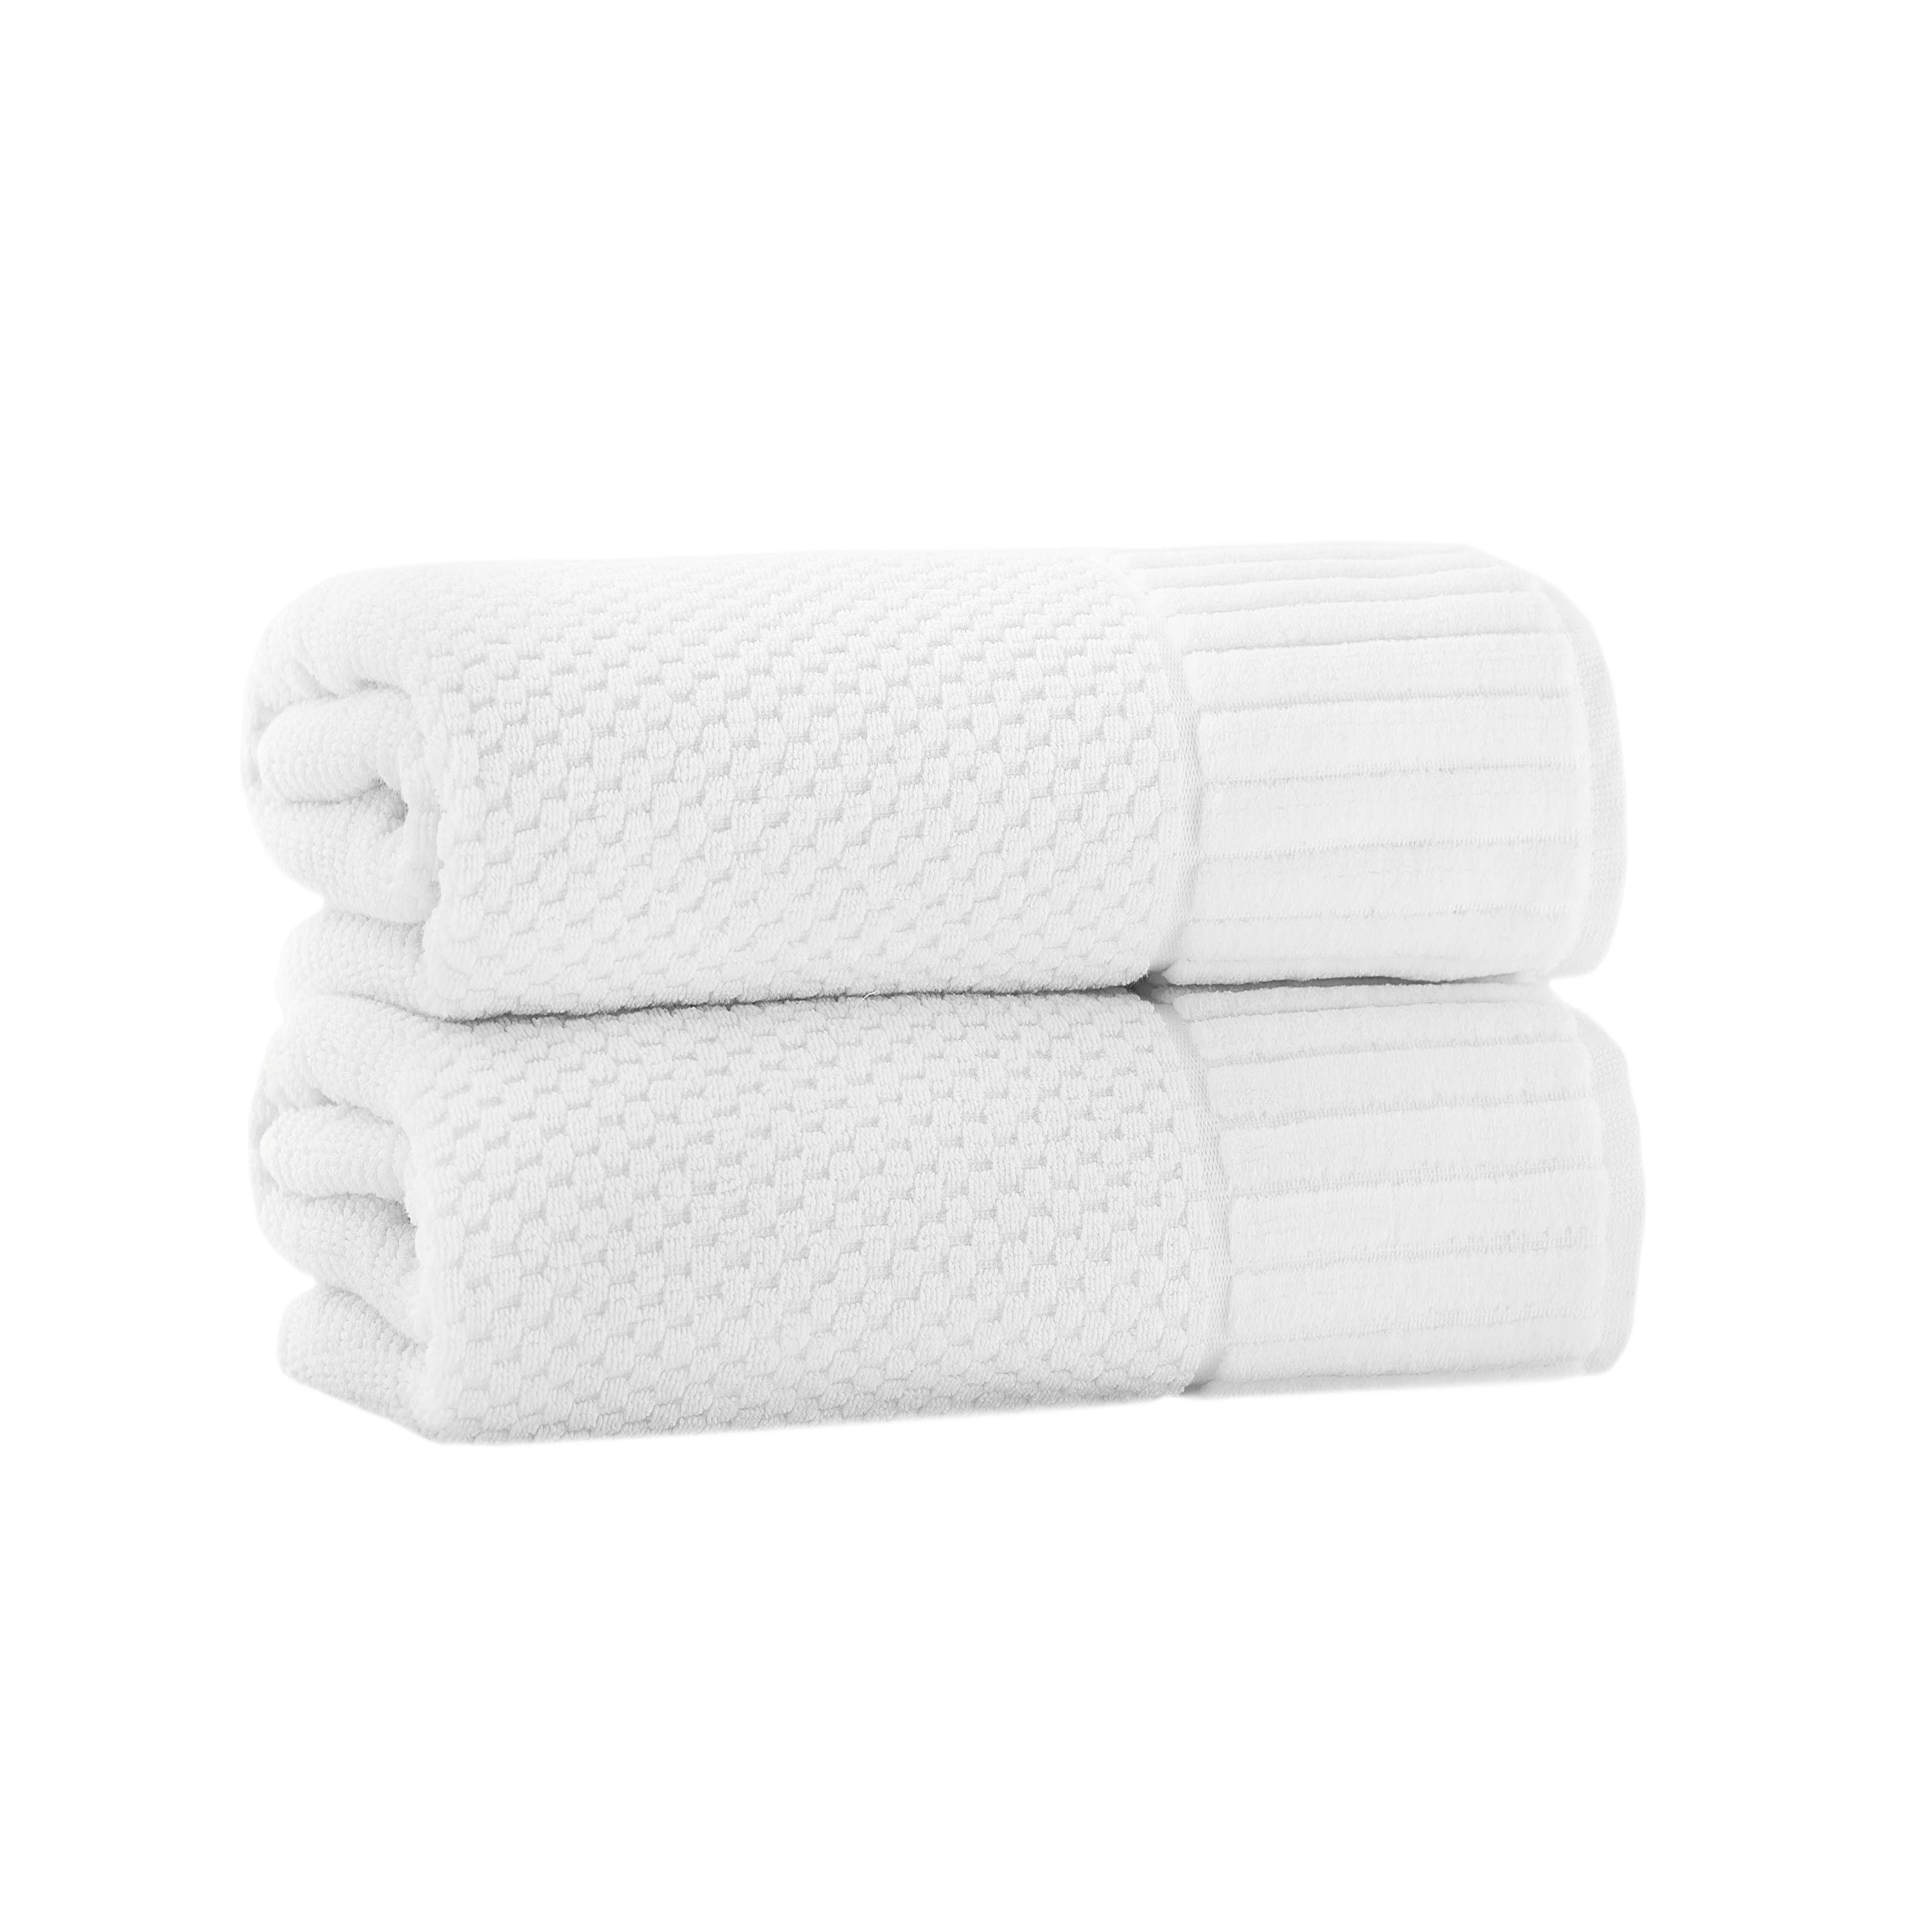 thumbnail 14 - The-Gray-Barn-Scharbauer-Bath-Towels-Set-of-2